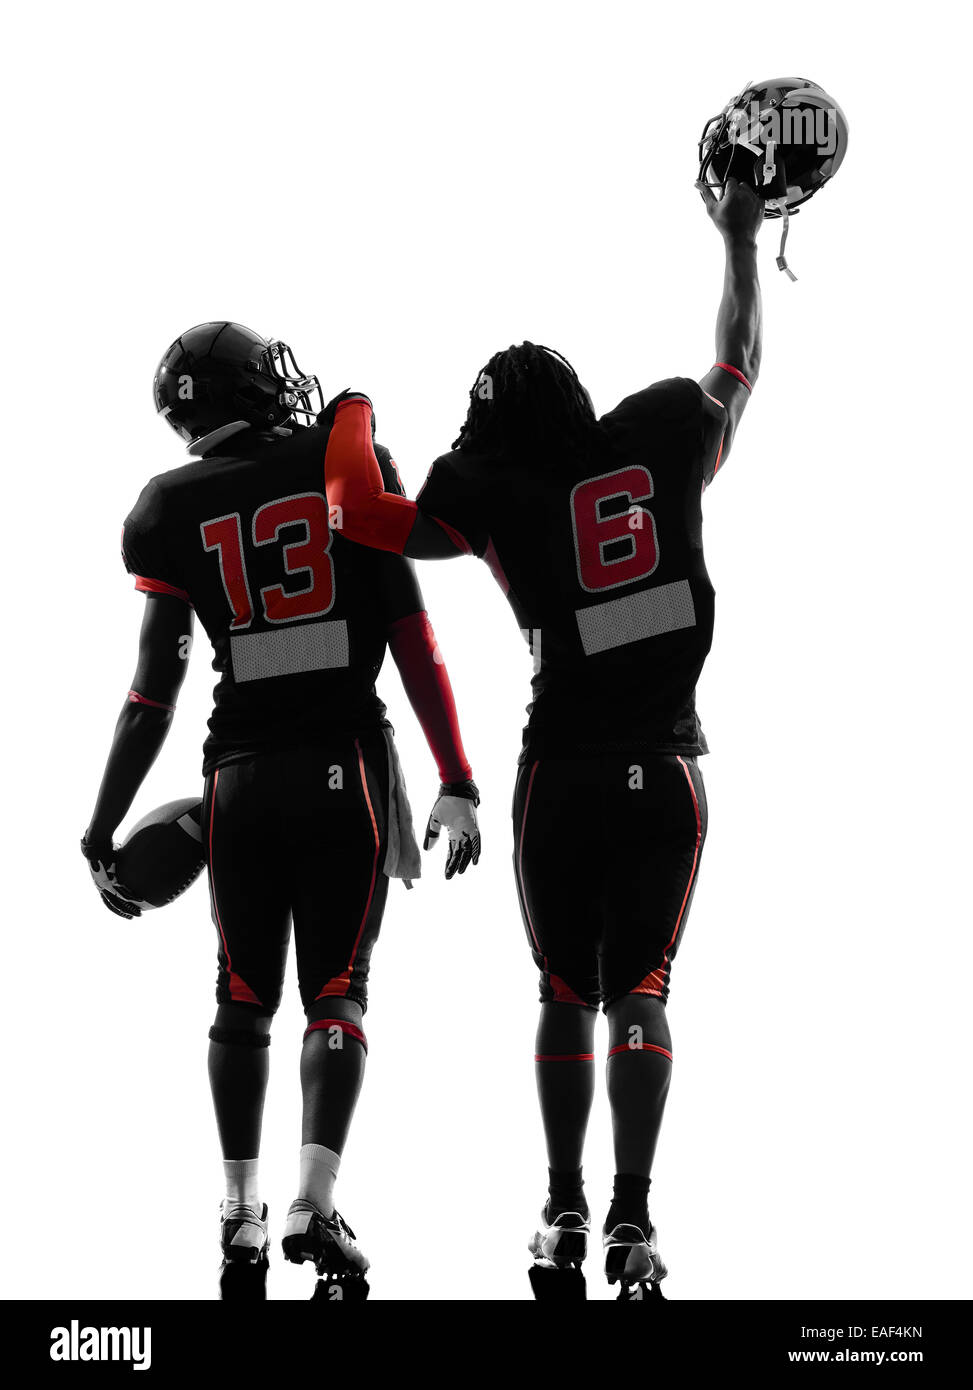 two american football players walking,rear view in silhouette shadow on white background - Stock Image